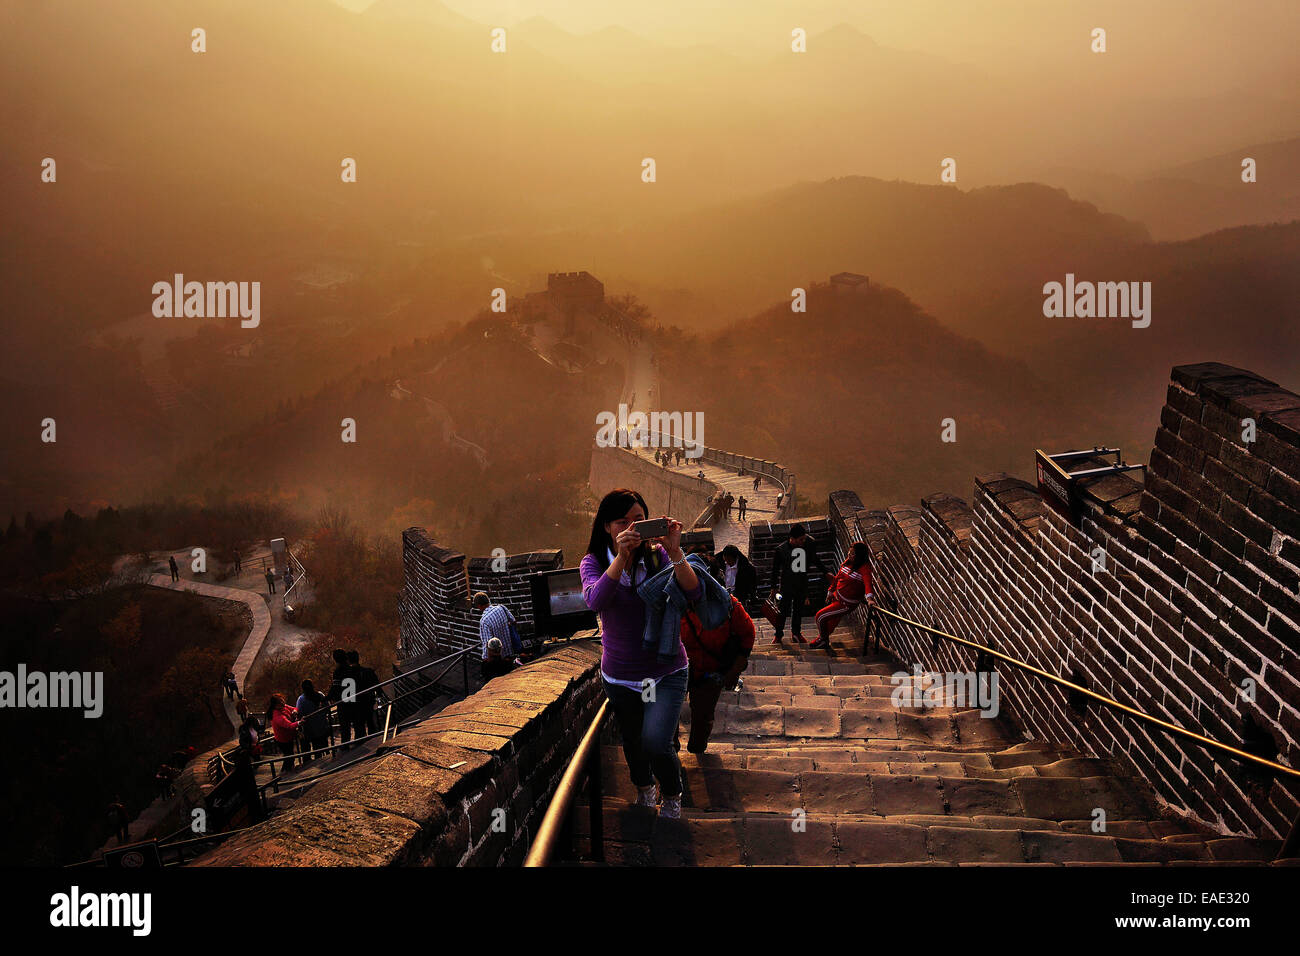 The Great Wall of China rises at sunset above the surrounding landscape overcast by smog at Badaling, some 70kilometers - Stock Image